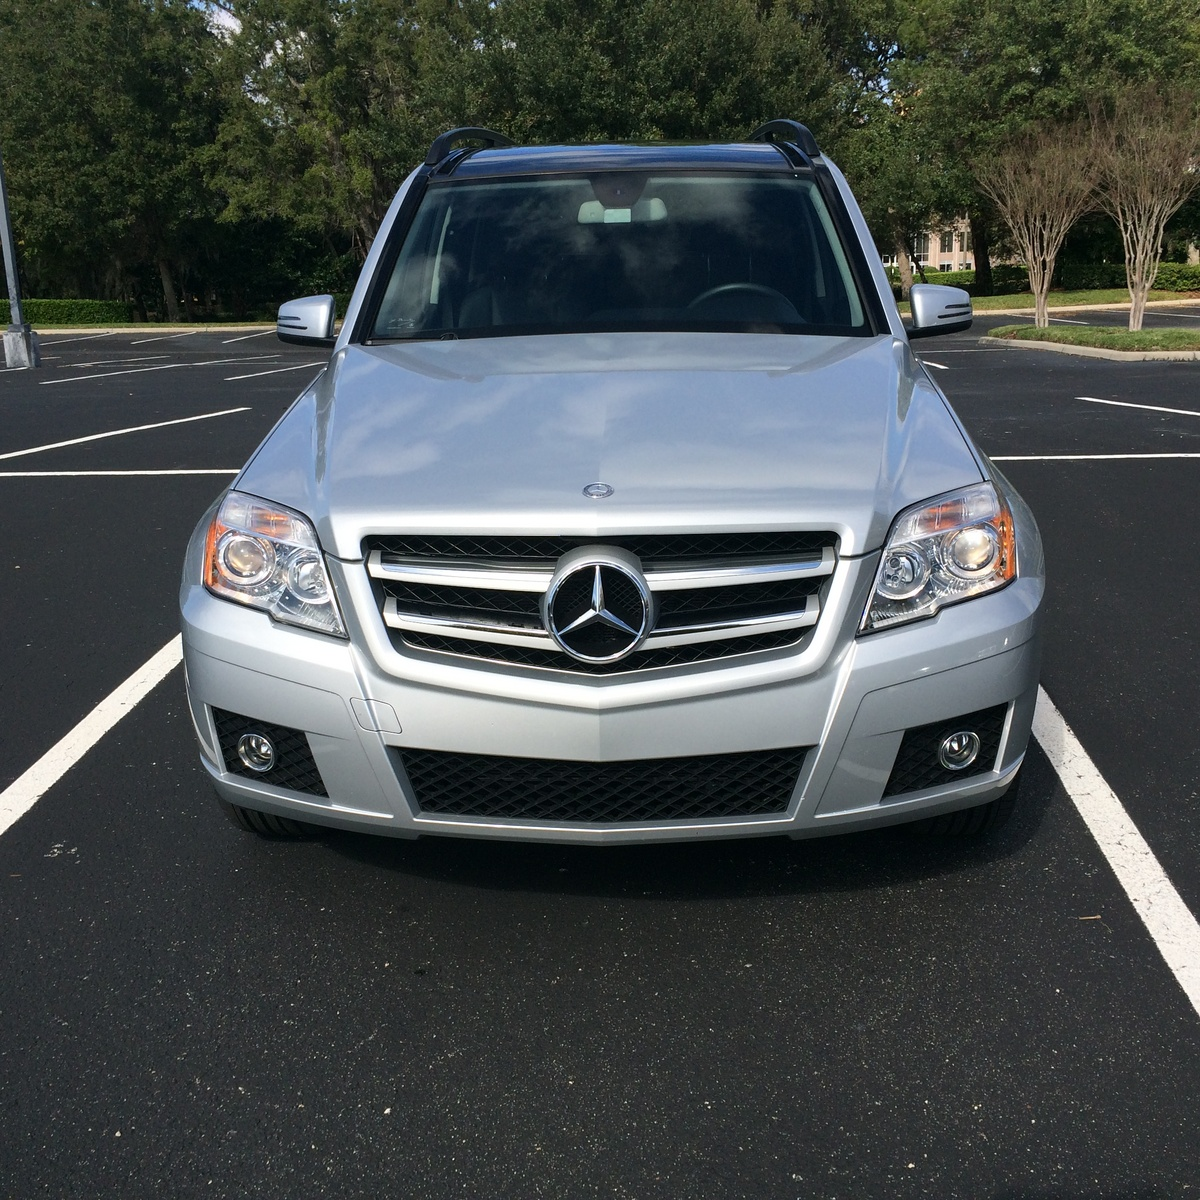 2012 mercedes benz glk class pictures cargurus for 2012 mercedes benz glk350 for sale